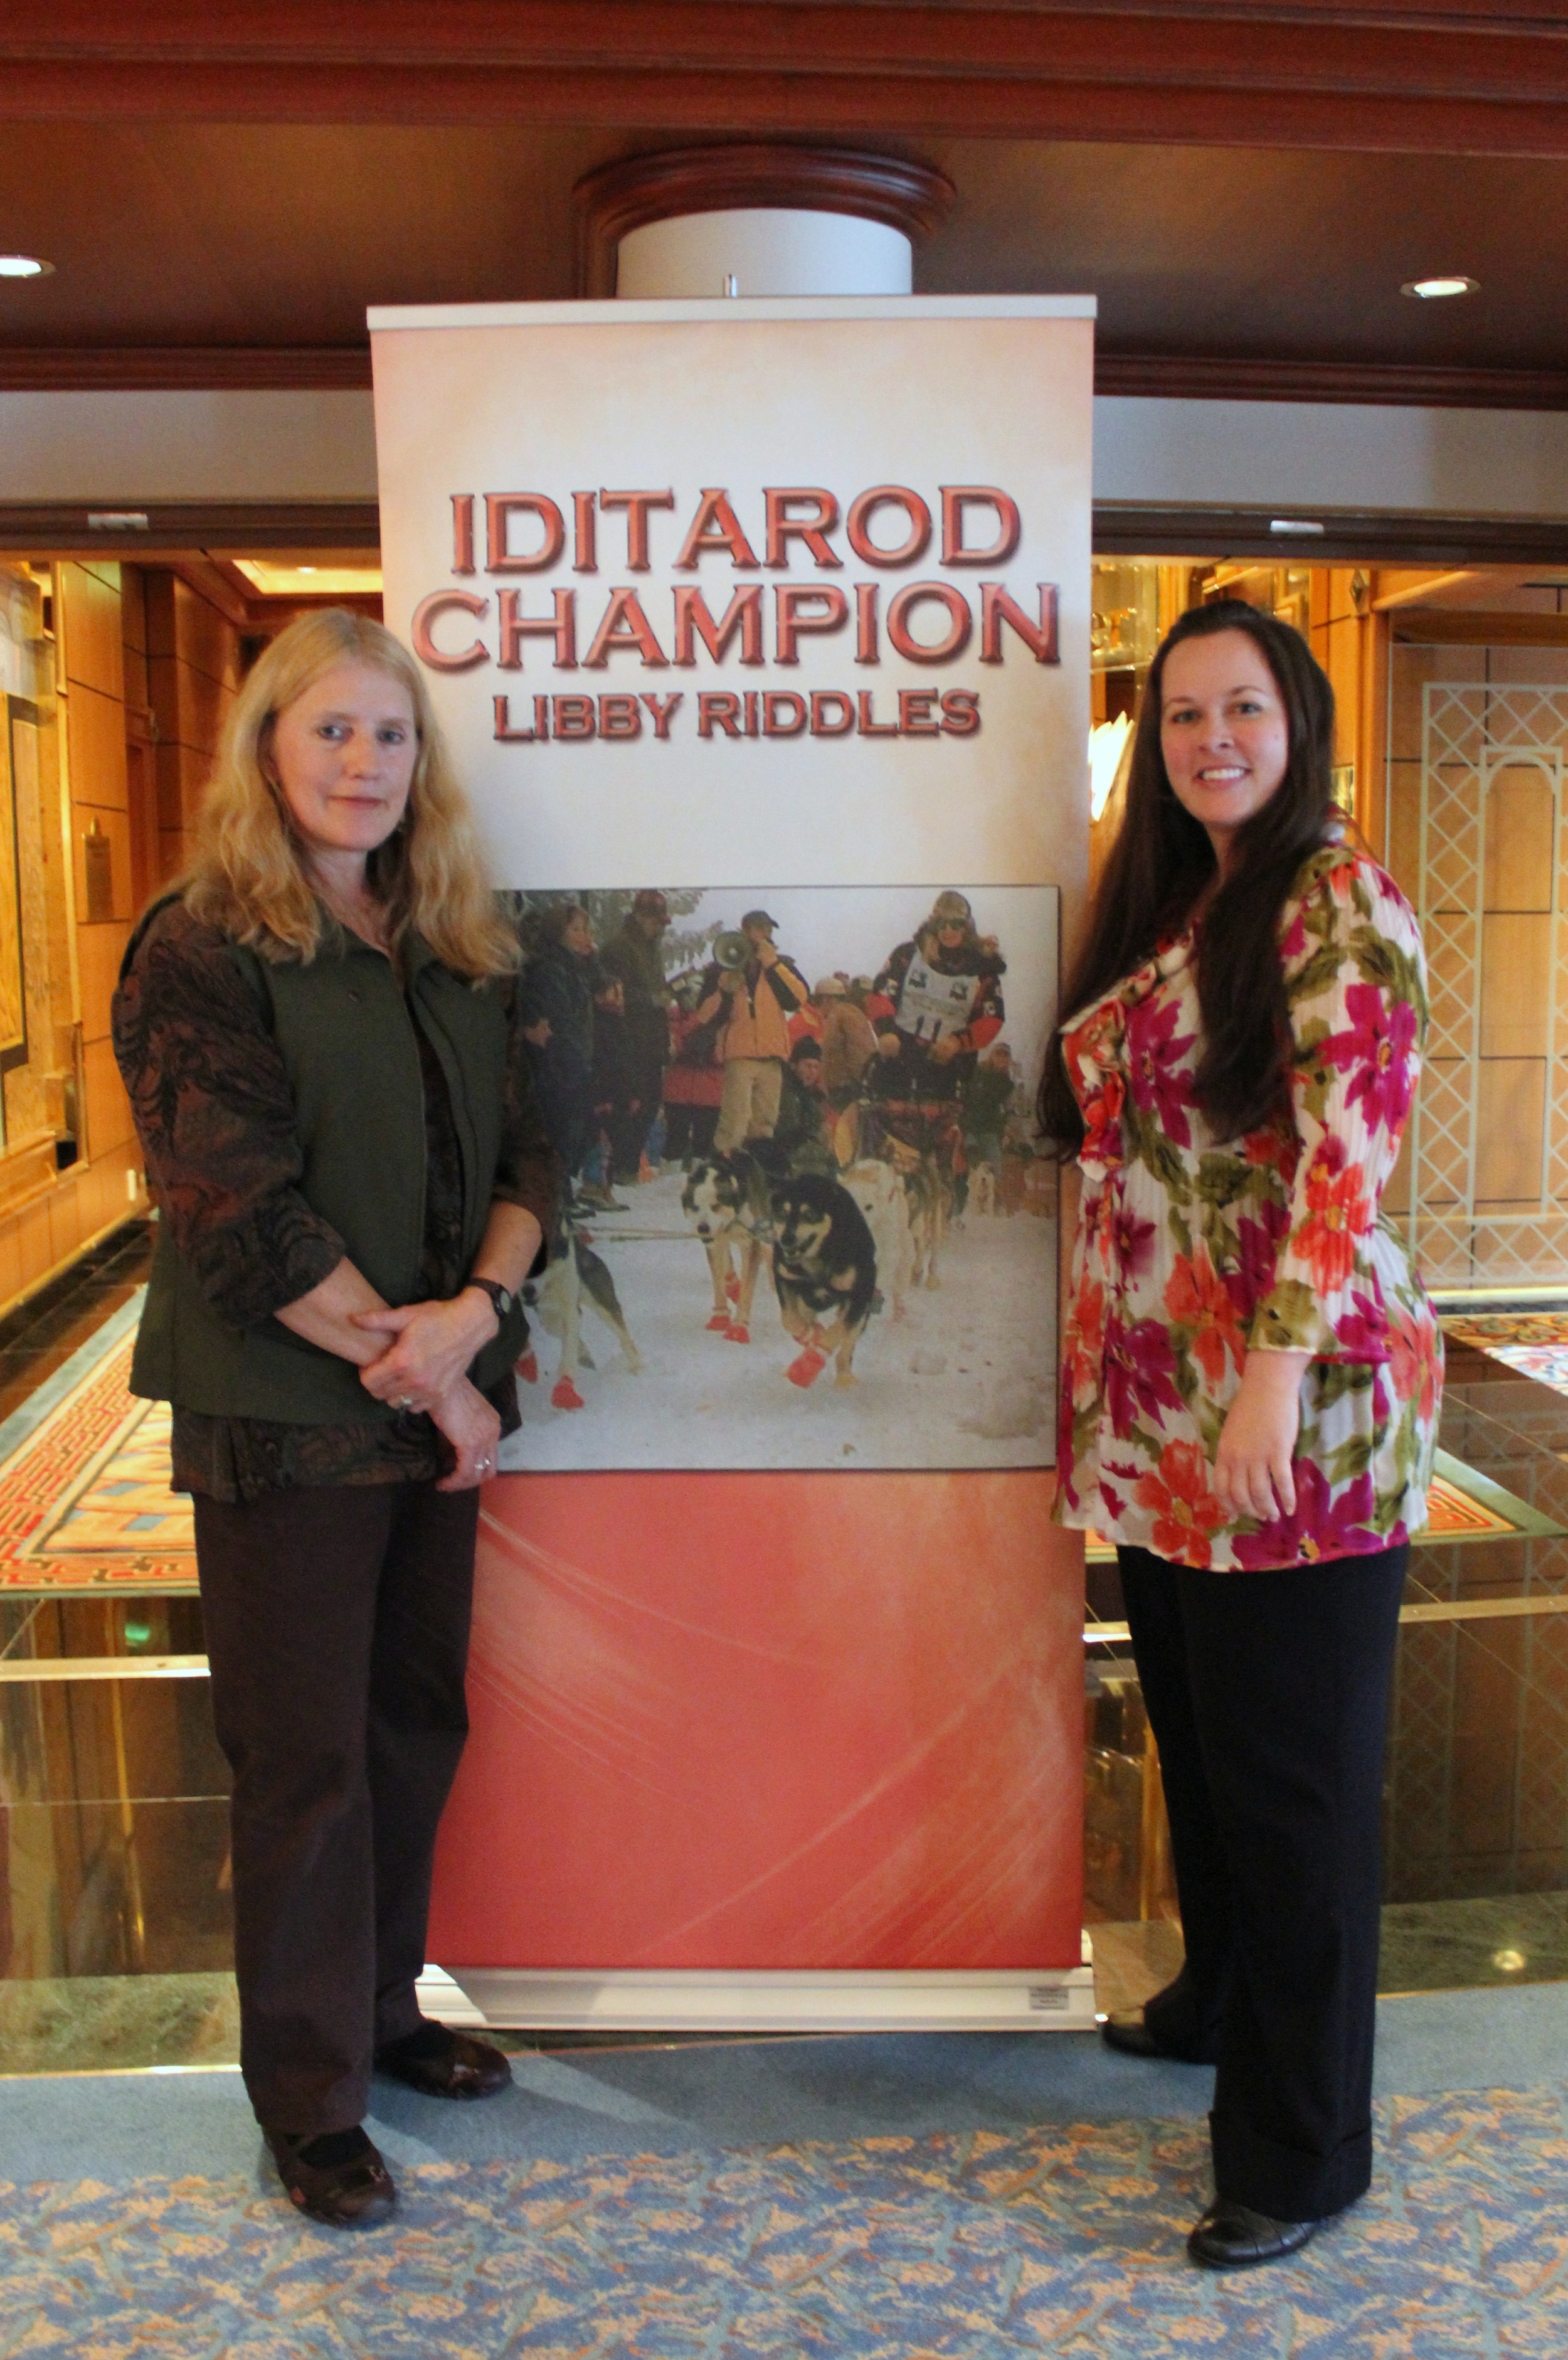 With Libby Riddles, the first female to win the Iditarod Trail Sled Dog Race. We met aboard a cruise ship in Juneau when she was presenting to tourists about the Last Great Race.